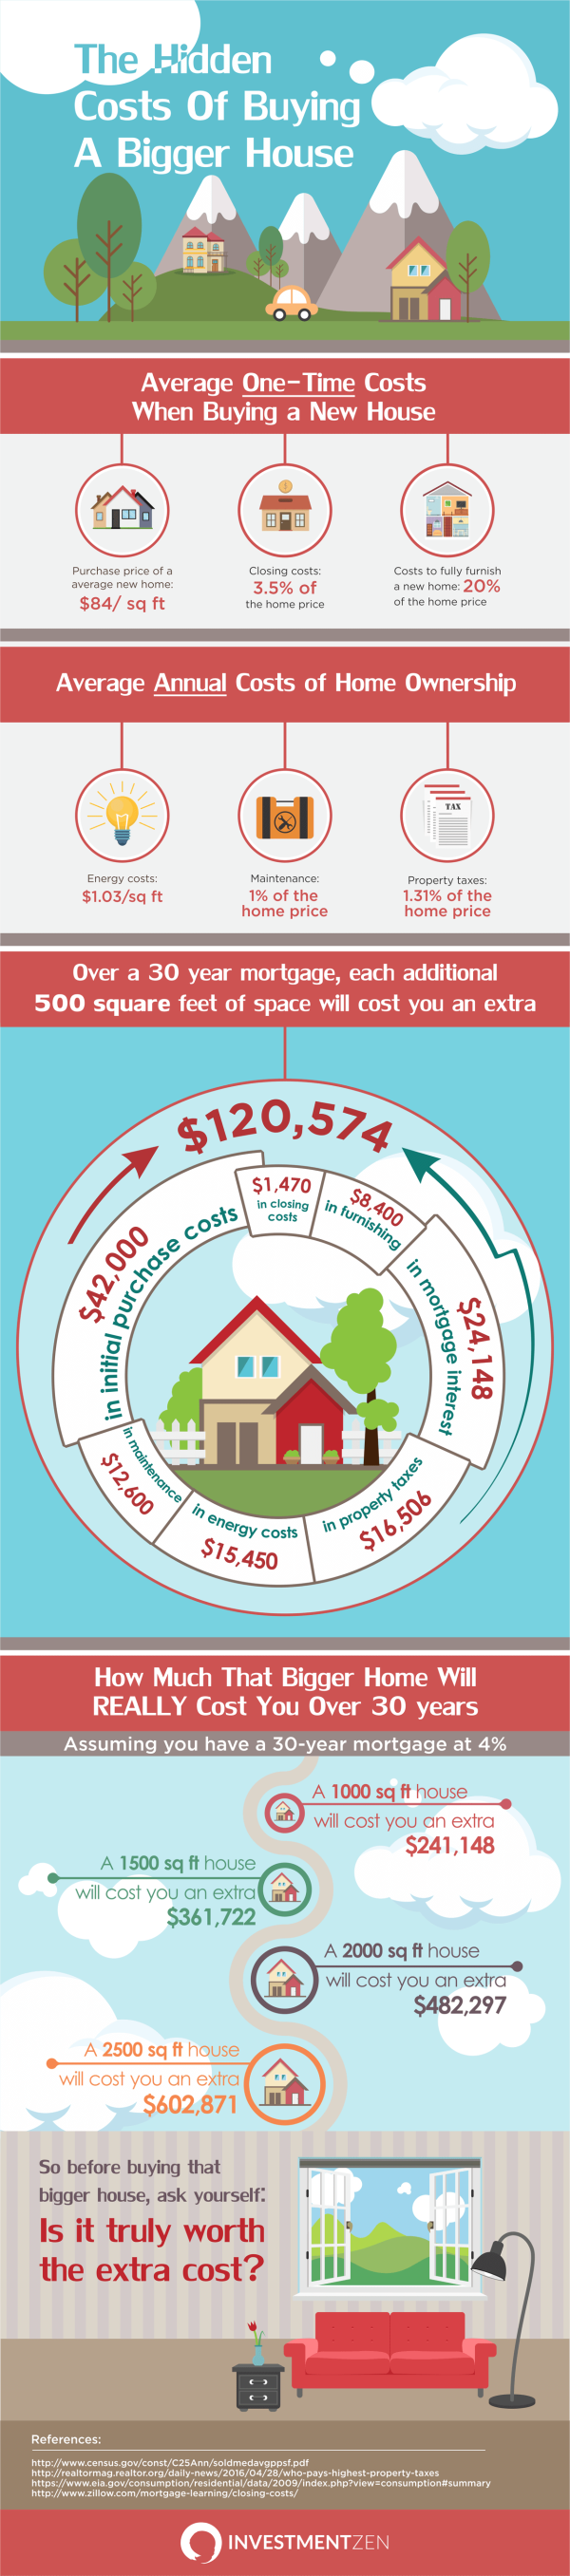 the-hidden-costs-of-buying-a-bigger-house_infographic